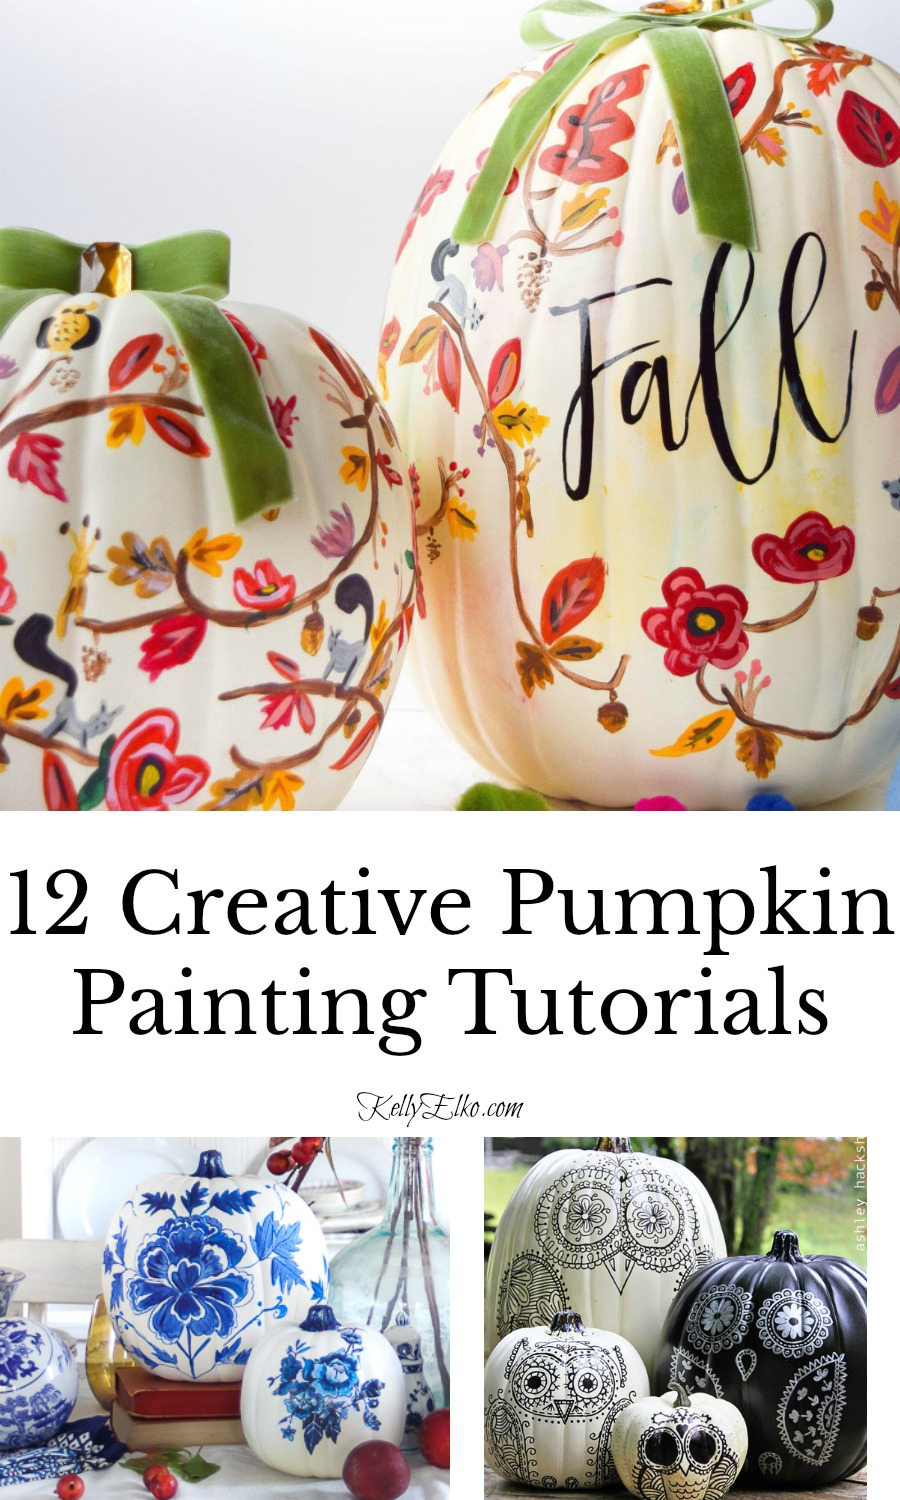 12 Creative Pumpkin Painting Tutorials - everything you need to know to recreate these looks kellyelko.com #pumpkins #pumpkincrafts #fallcrafts #kidscrafts #paintingtips #paintingtechniques